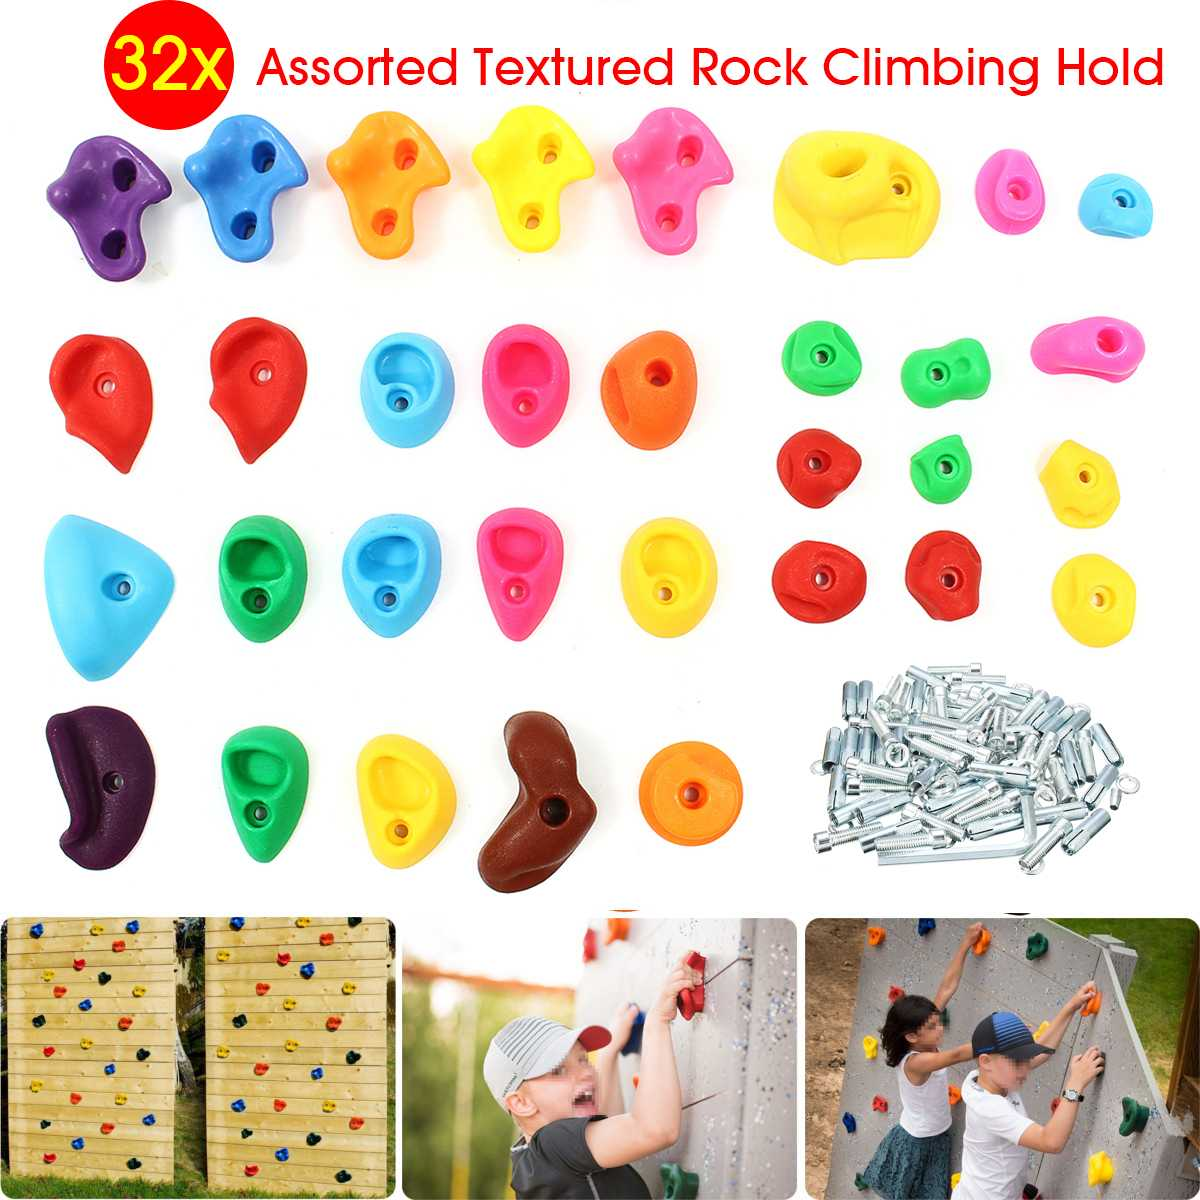 32Pcs/set Assorted Textured Rock Climbing Frame Mixed Color Rock Climbing Wall Stones Hand Feet Holds Grip Kids Sport Toys